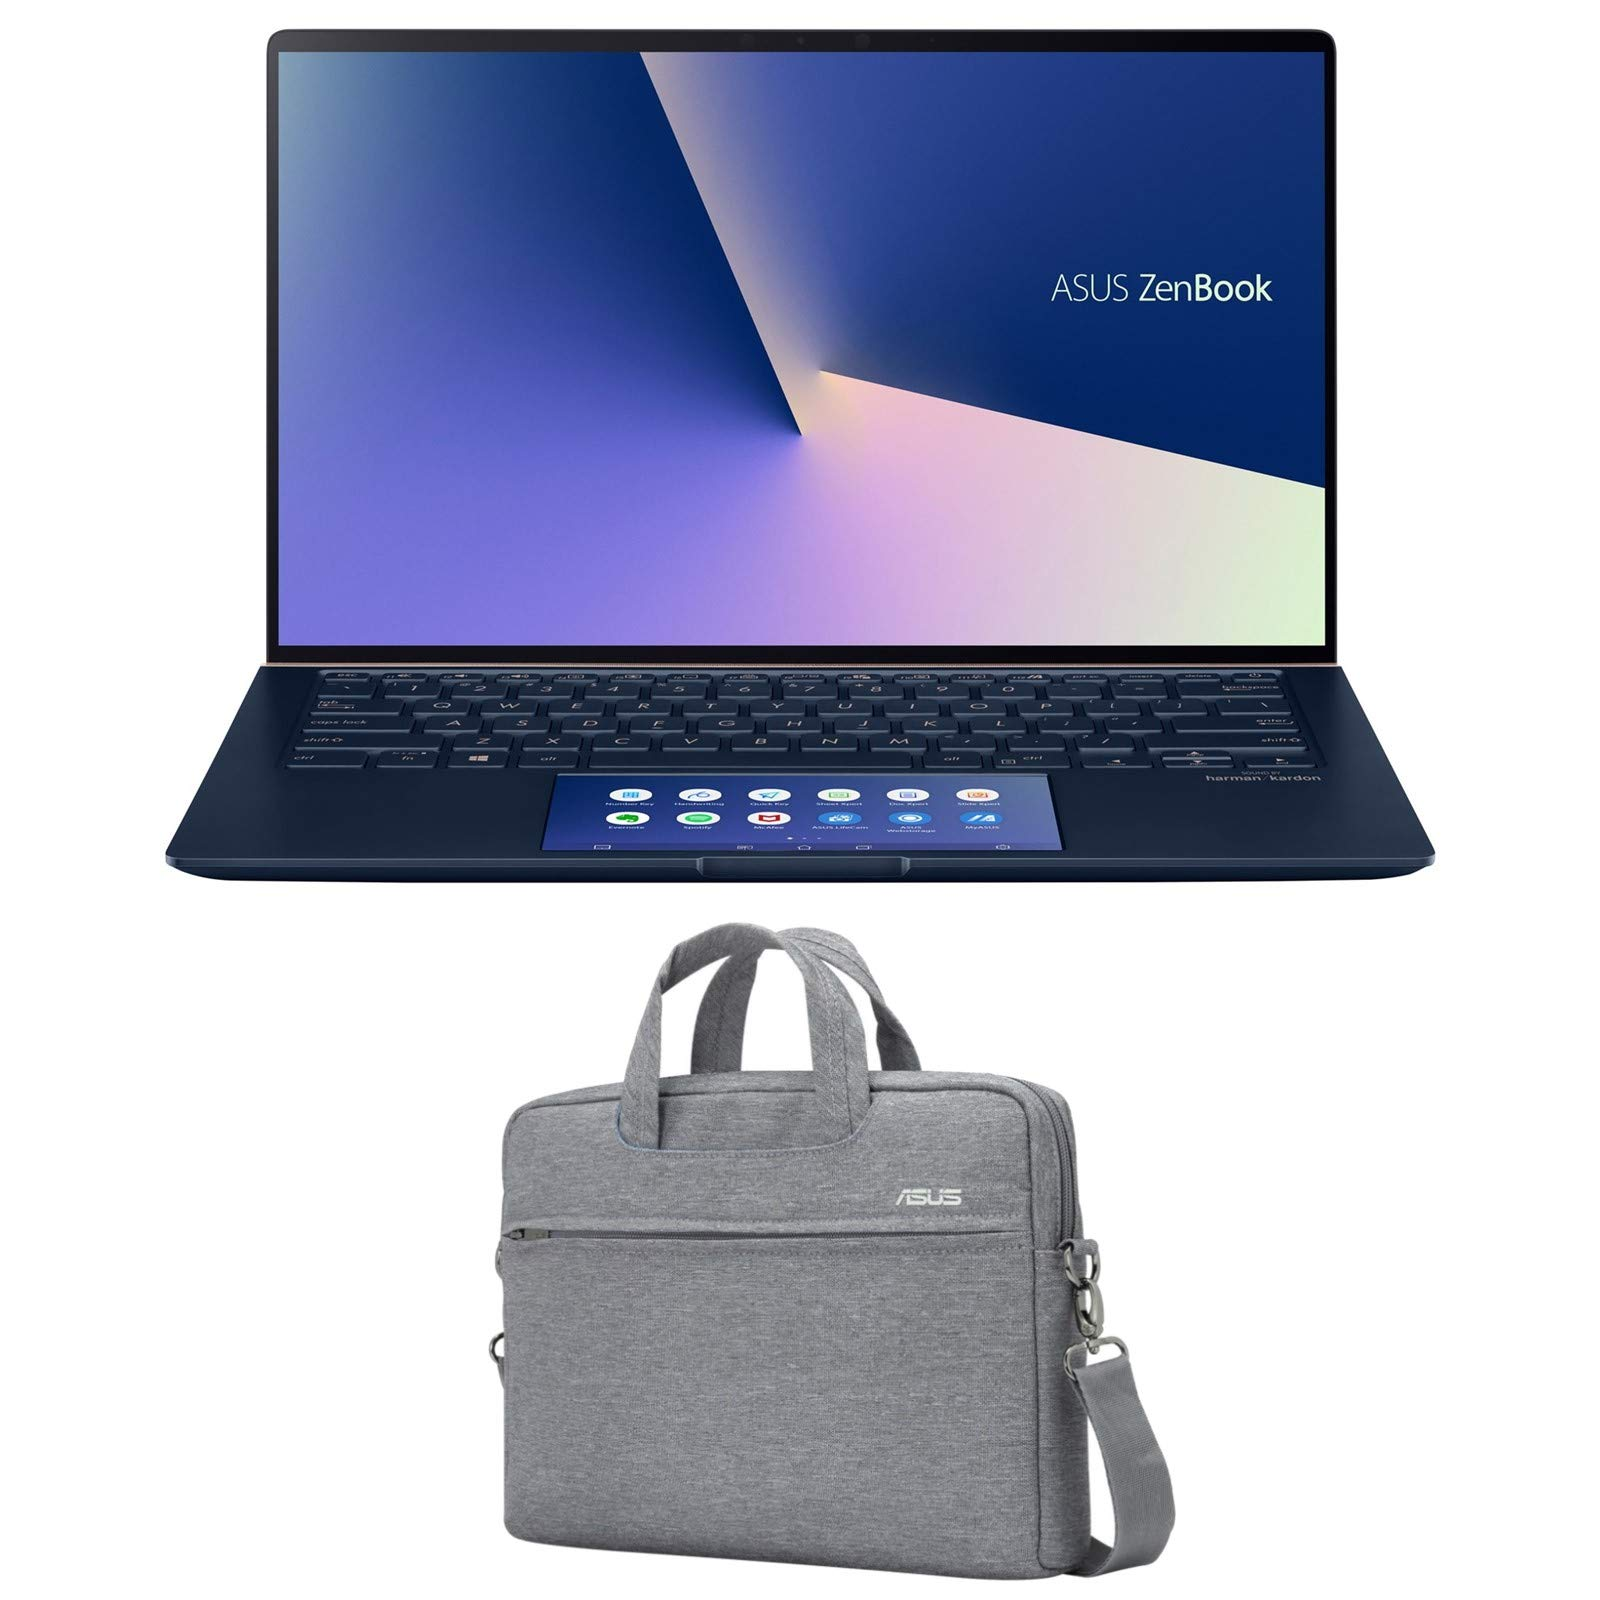 "ASUS ZenBook 14 UX434FL-DB77 (i7-8565U, 16GB RAM, 1TB SATA SSD, NVIDIA MX250 2GB, 14"" Full HD, Windows 10 Pro) Laptop"